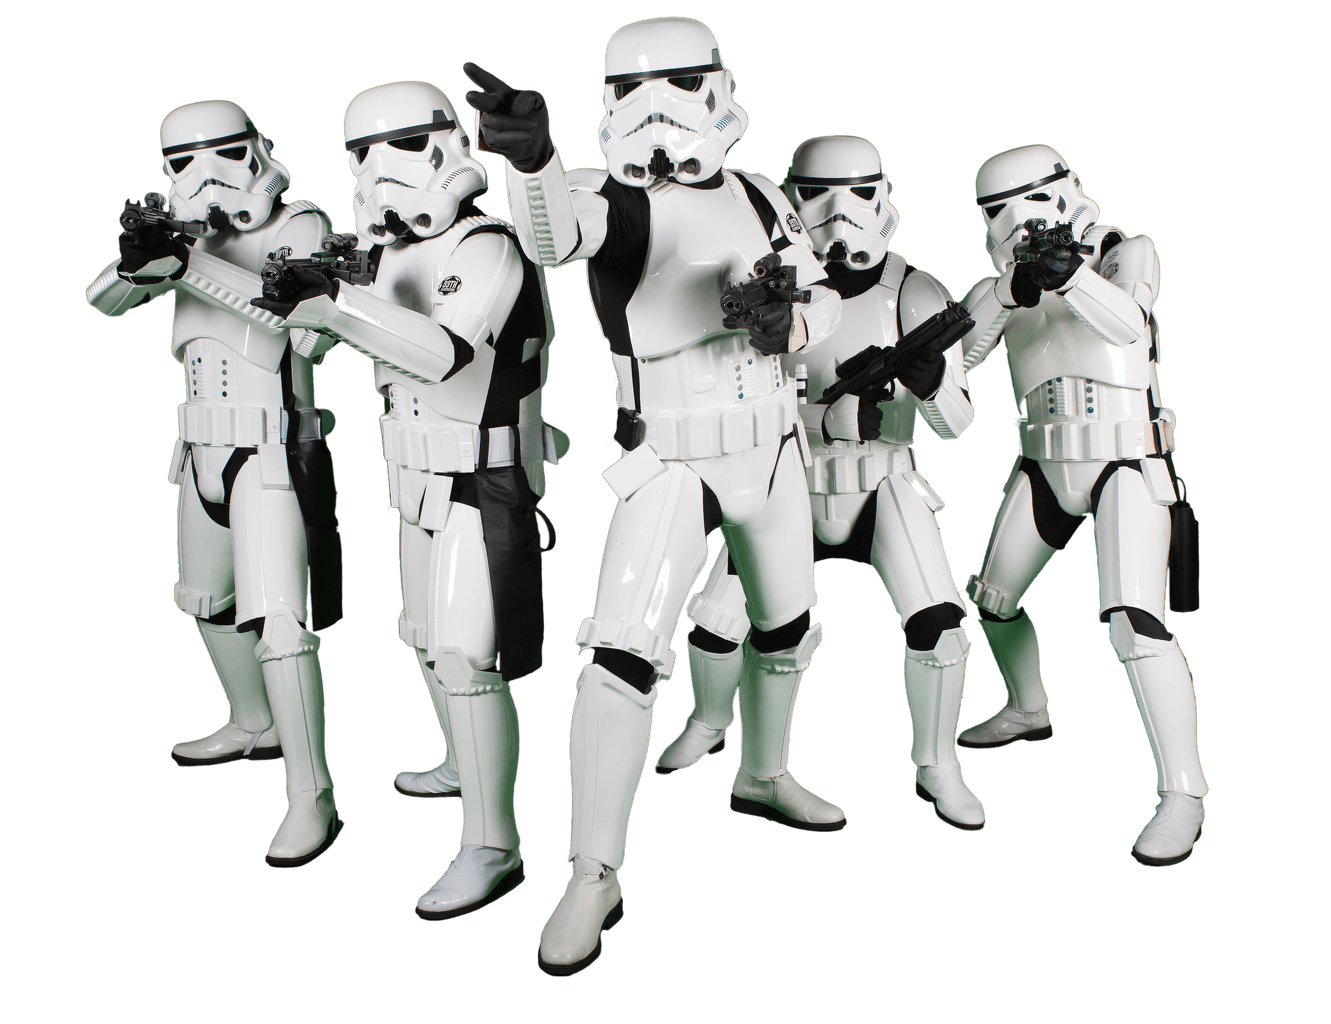 Starwars clipart transparent background. Star troopers wars png